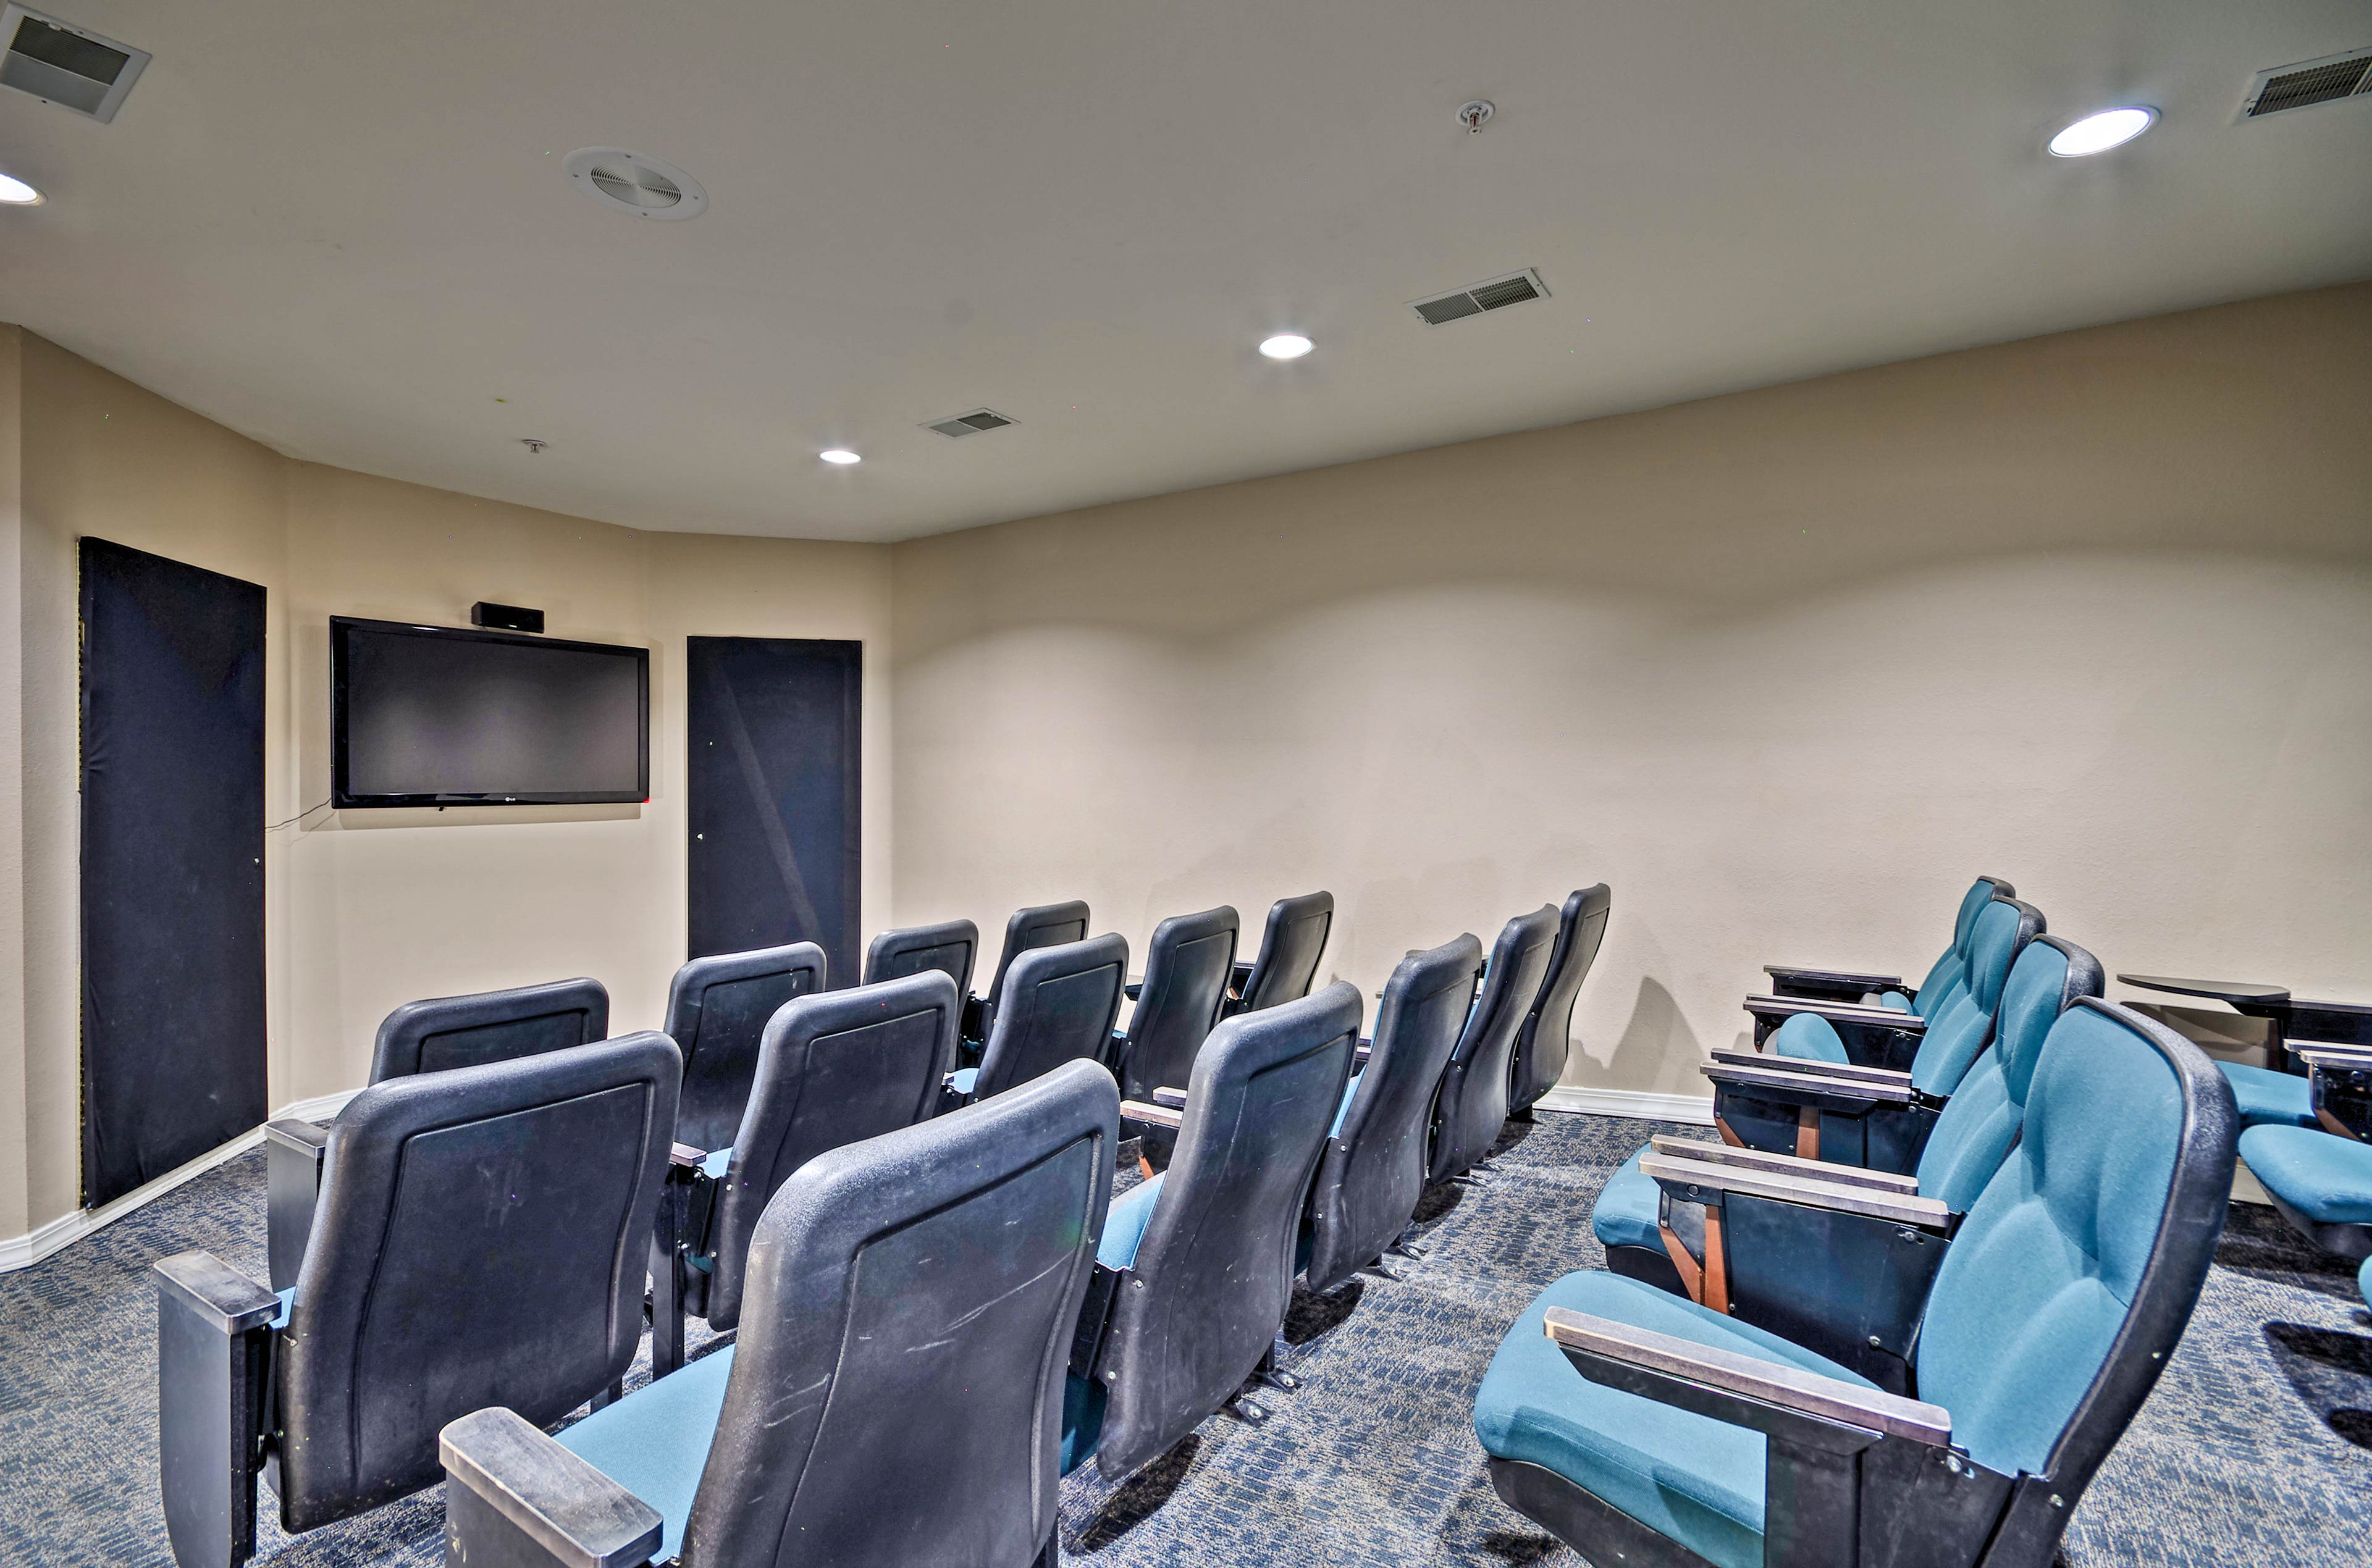 Sit back and enjoy a movie in the theater room.